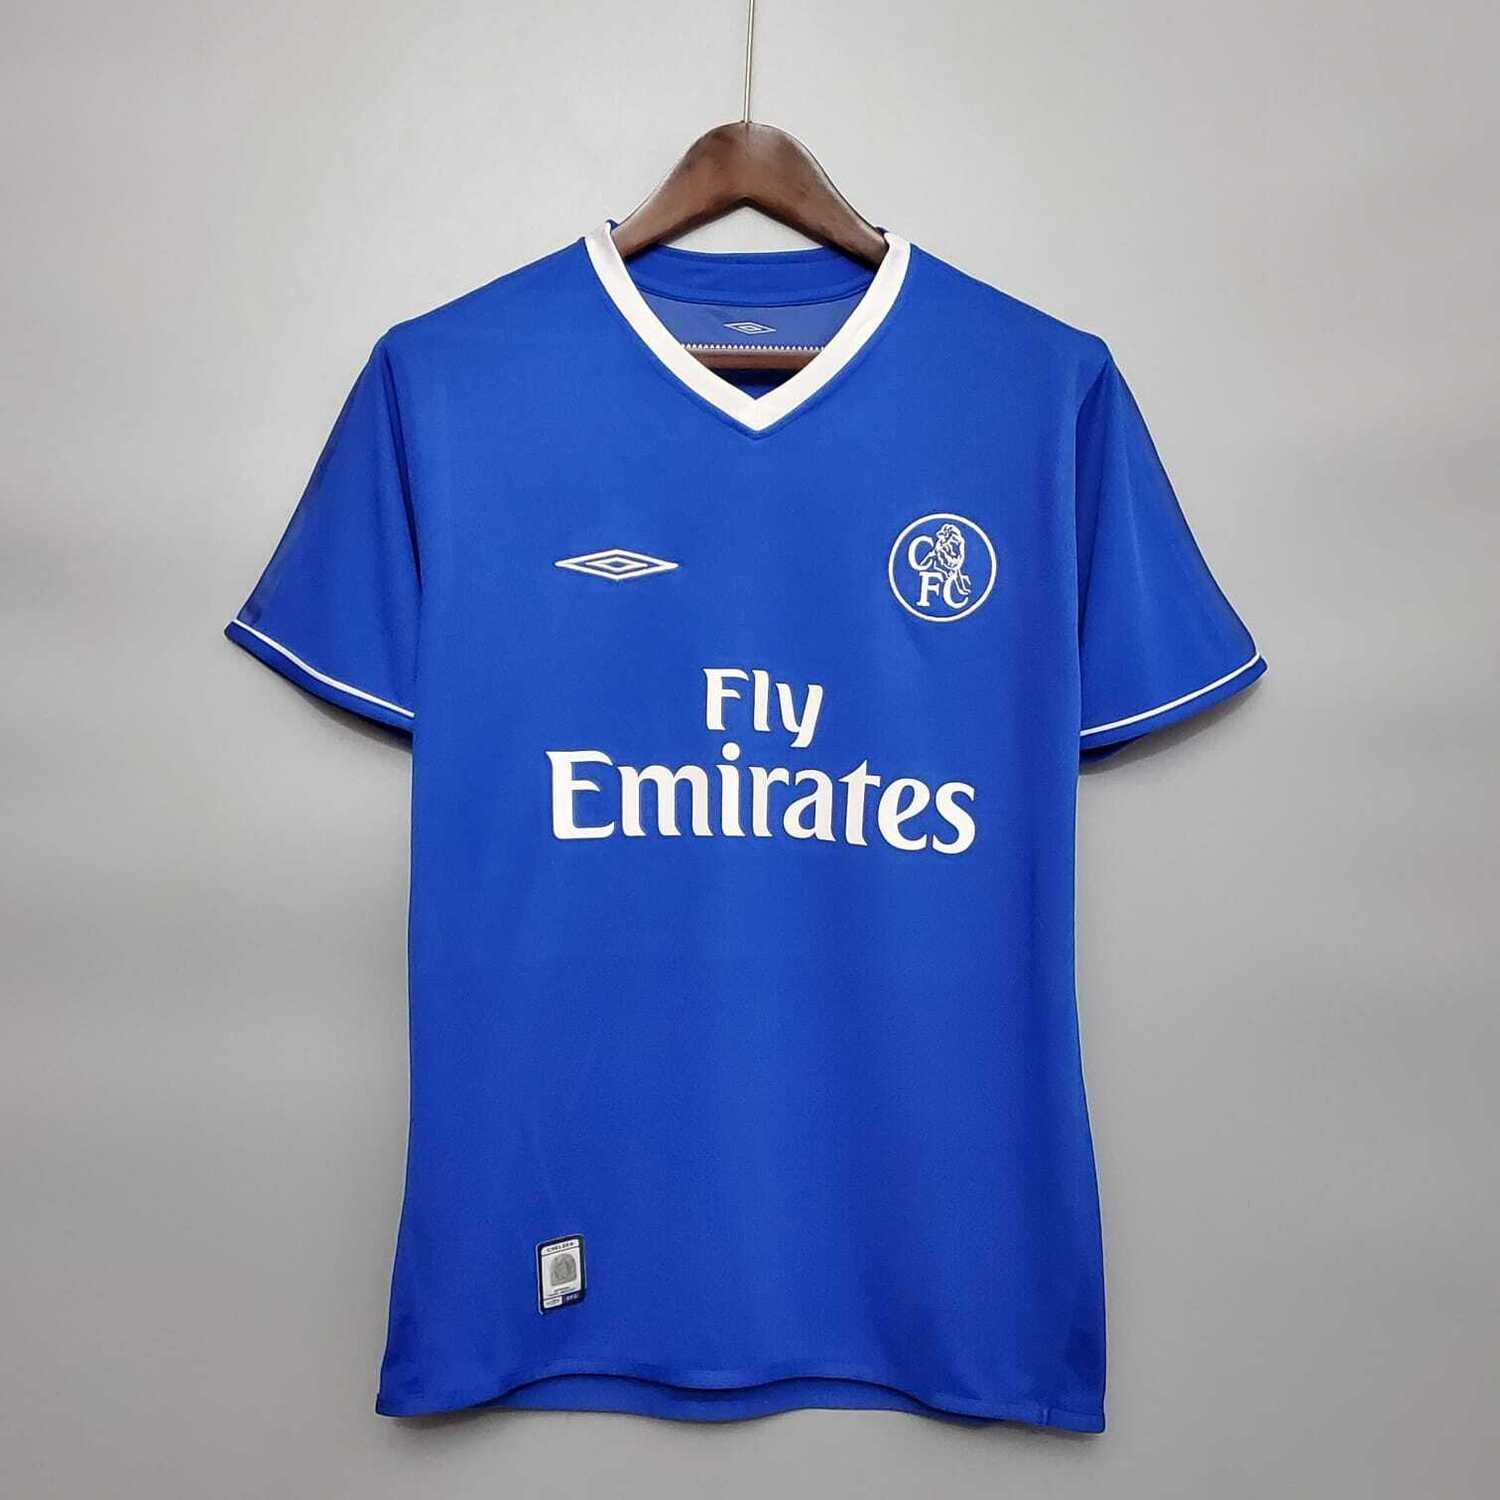 Chelsea 2003-05 Retro Home Jersey [Pre-paid Only]